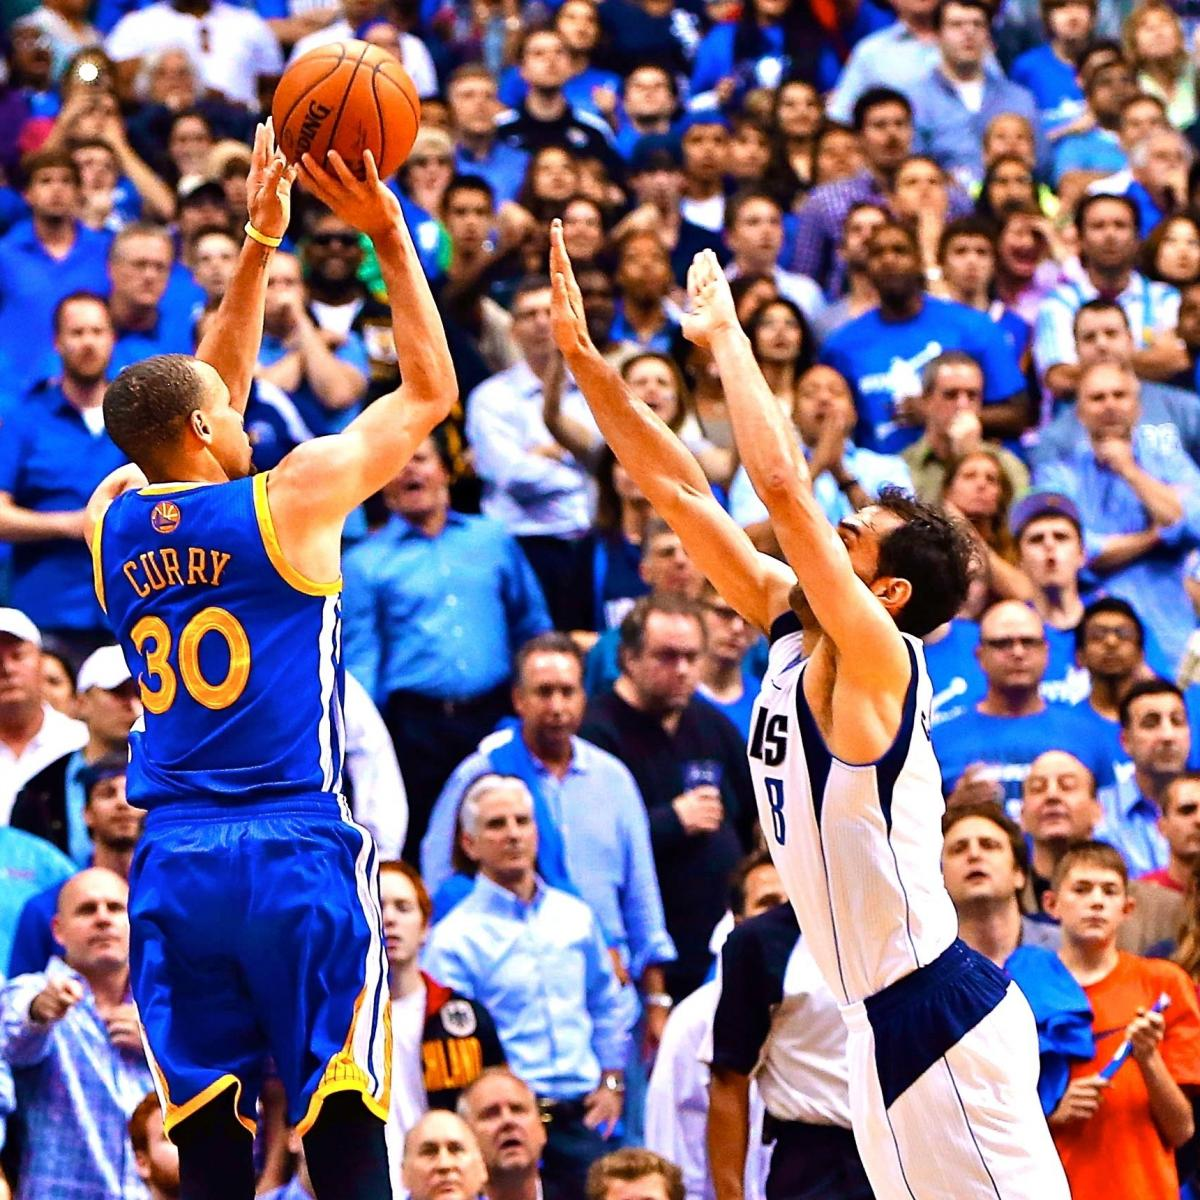 Relatives Man Tied To Dallas Shooting Was Mentally: Stephen Curry Hits Ice Cold Game-Winning Shot Vs. Dallas